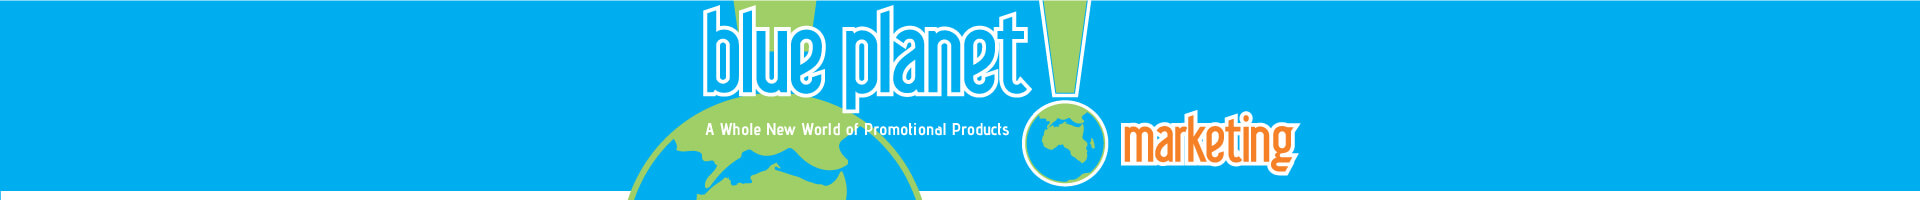 Blue Planet Marketing - Winnipeg Manitoba Canada